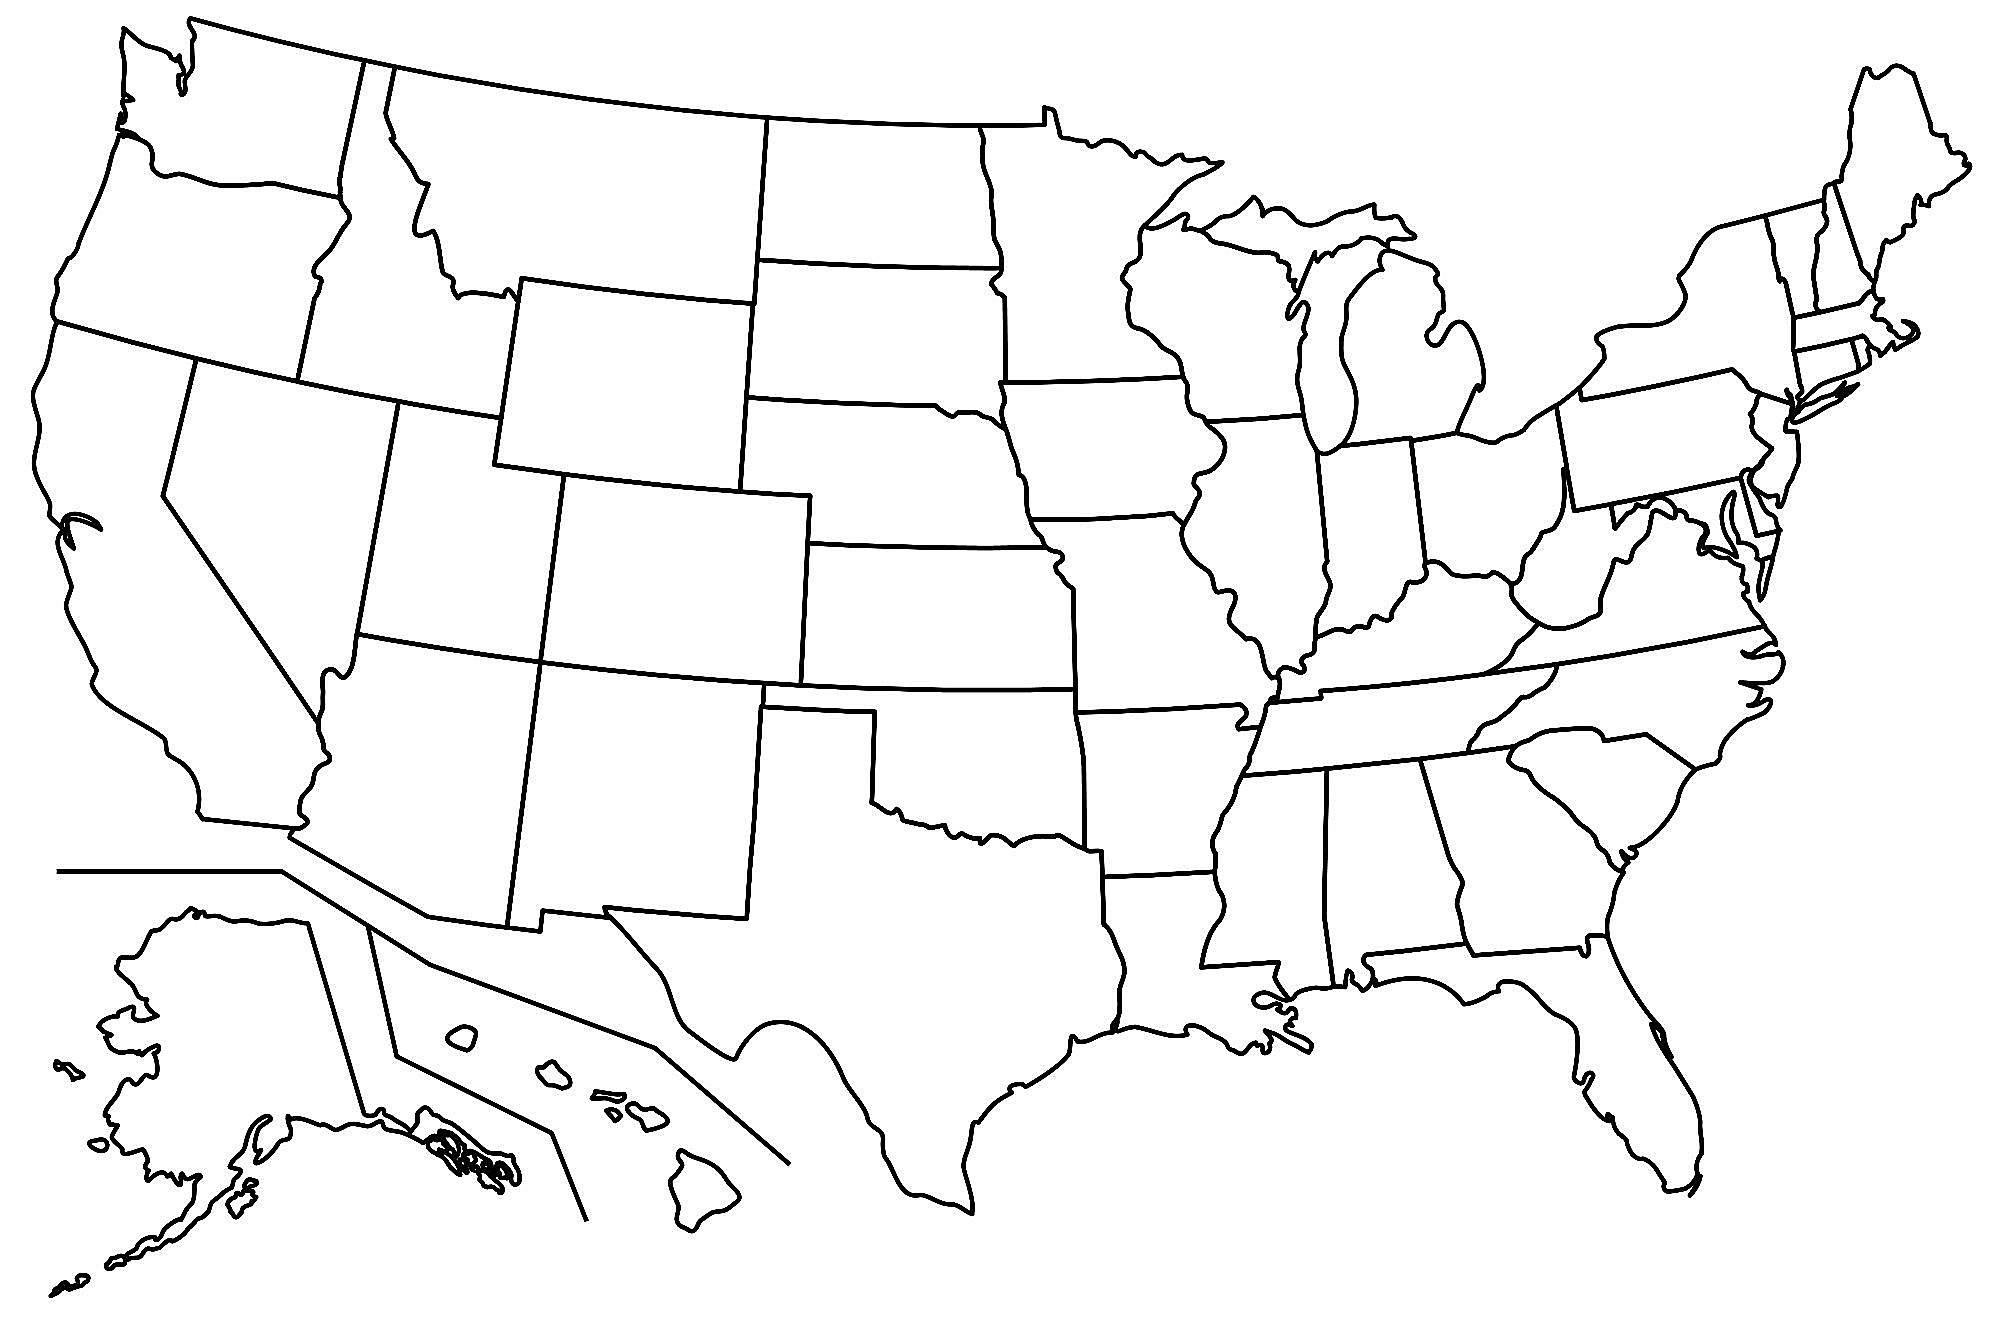 Blank Maps Of The US And Other Countries - Blackline us map